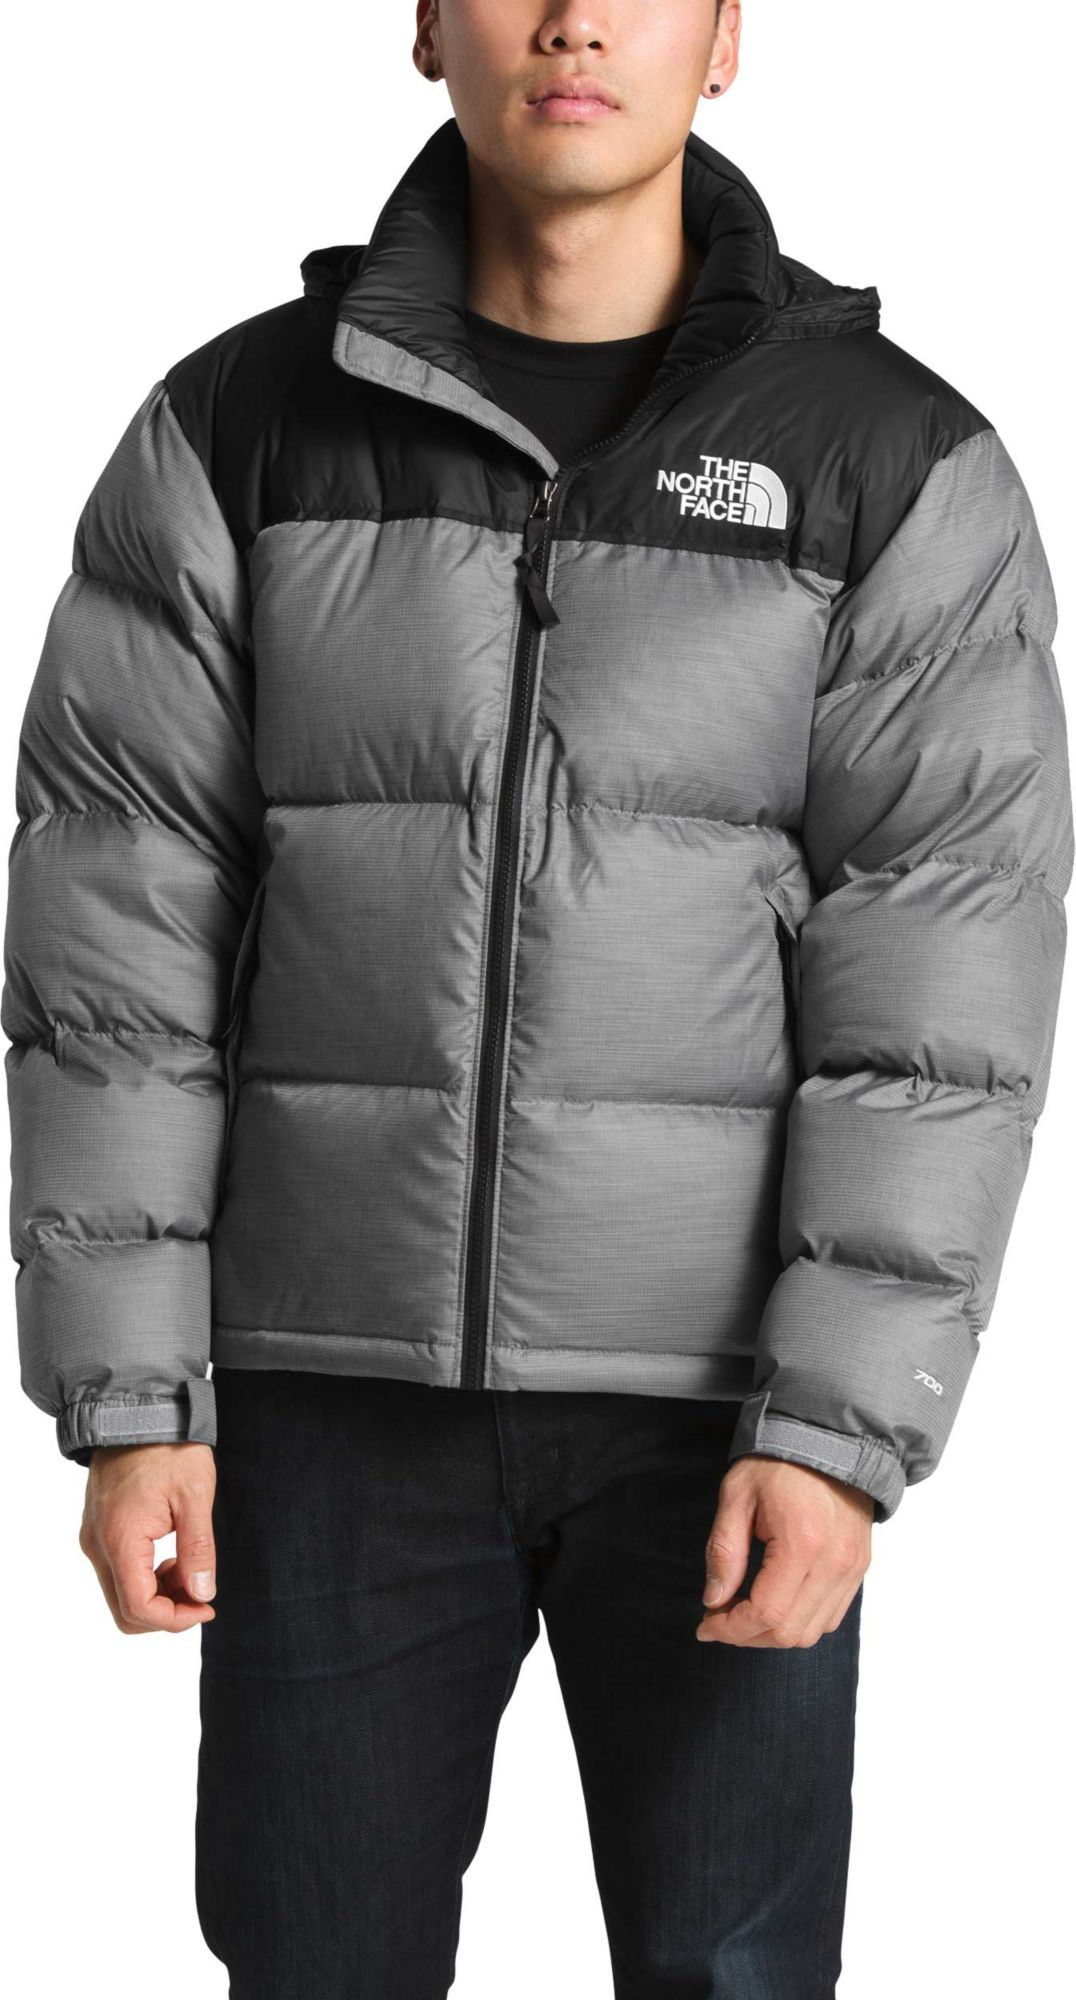 09e3e28f2c The North Face Men s 1996 Retro Nuptse Jacket in 2019